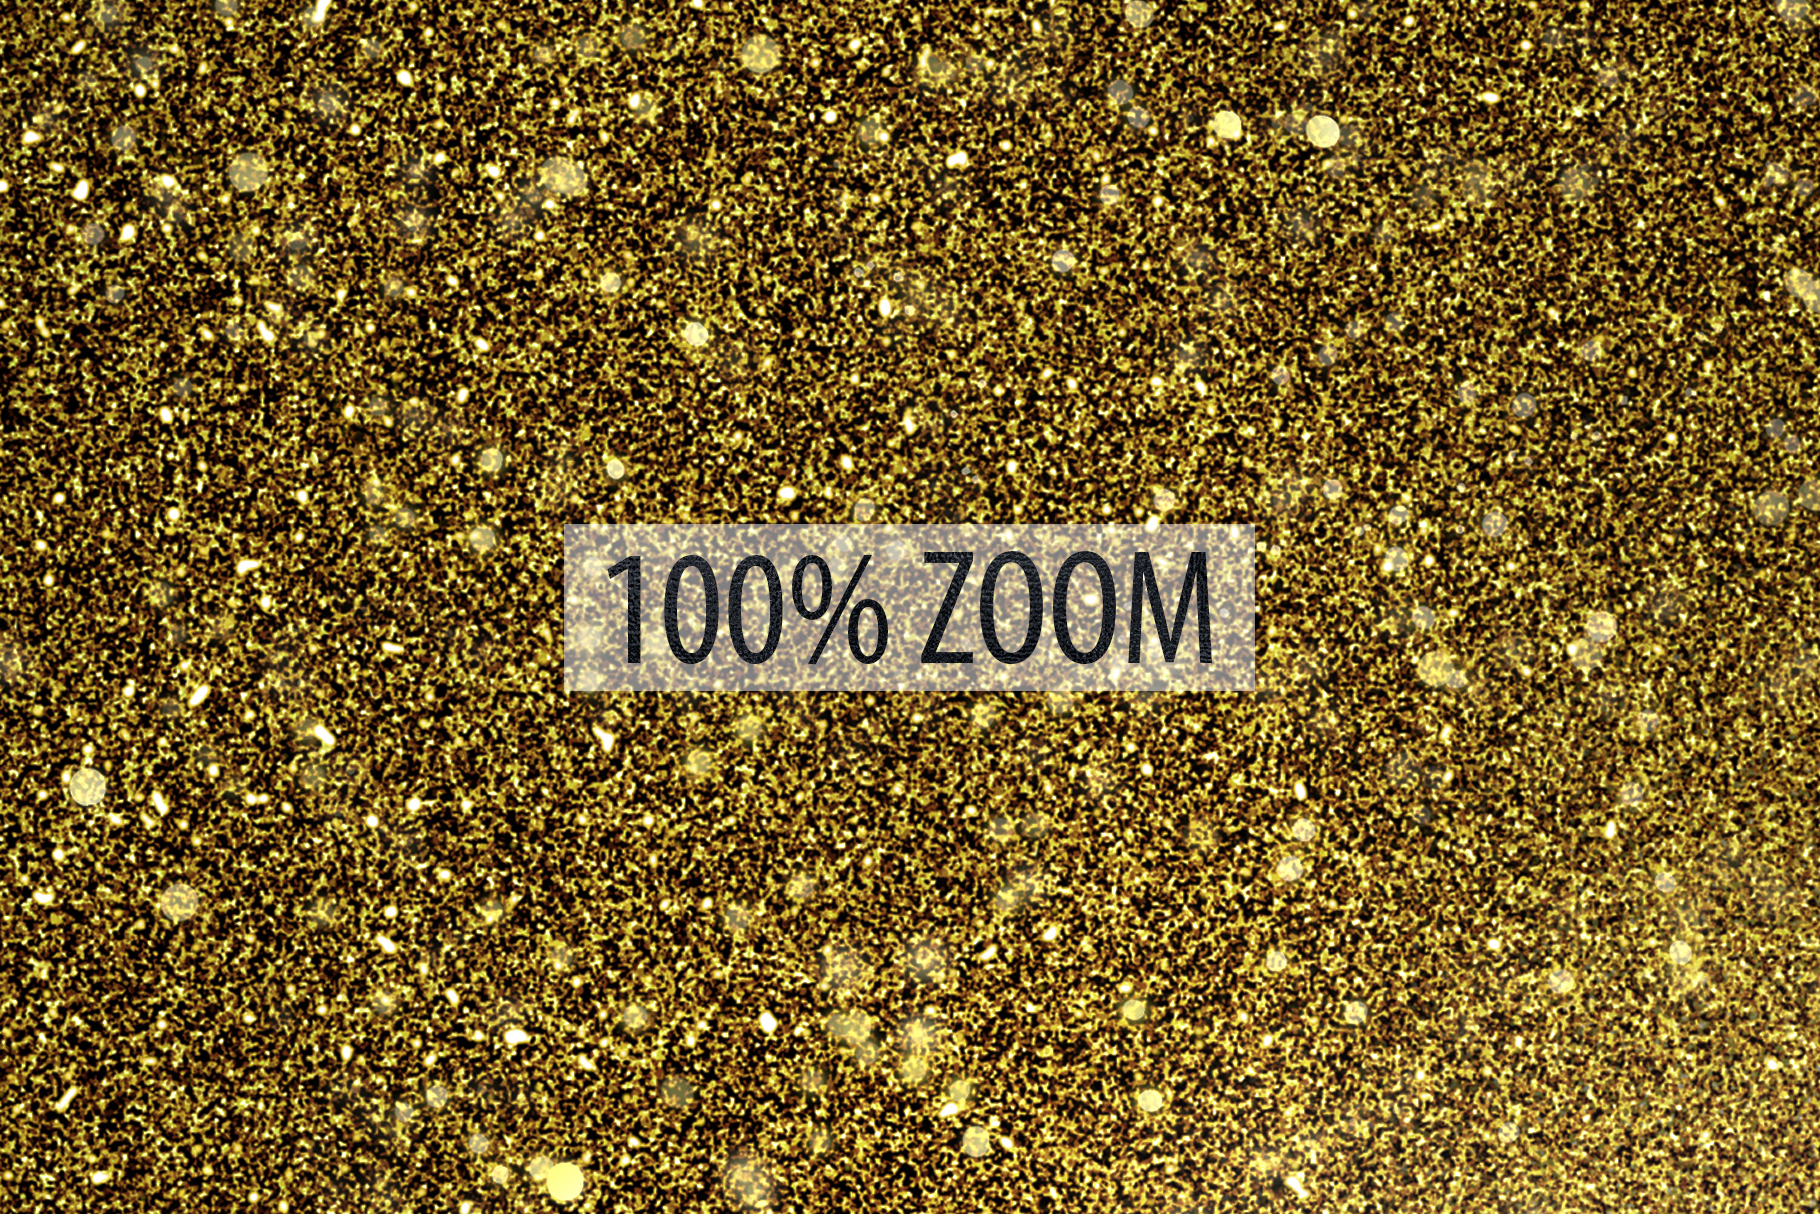 Gold Foil and Glitter Textures - Metallic Digital Papers example image 15